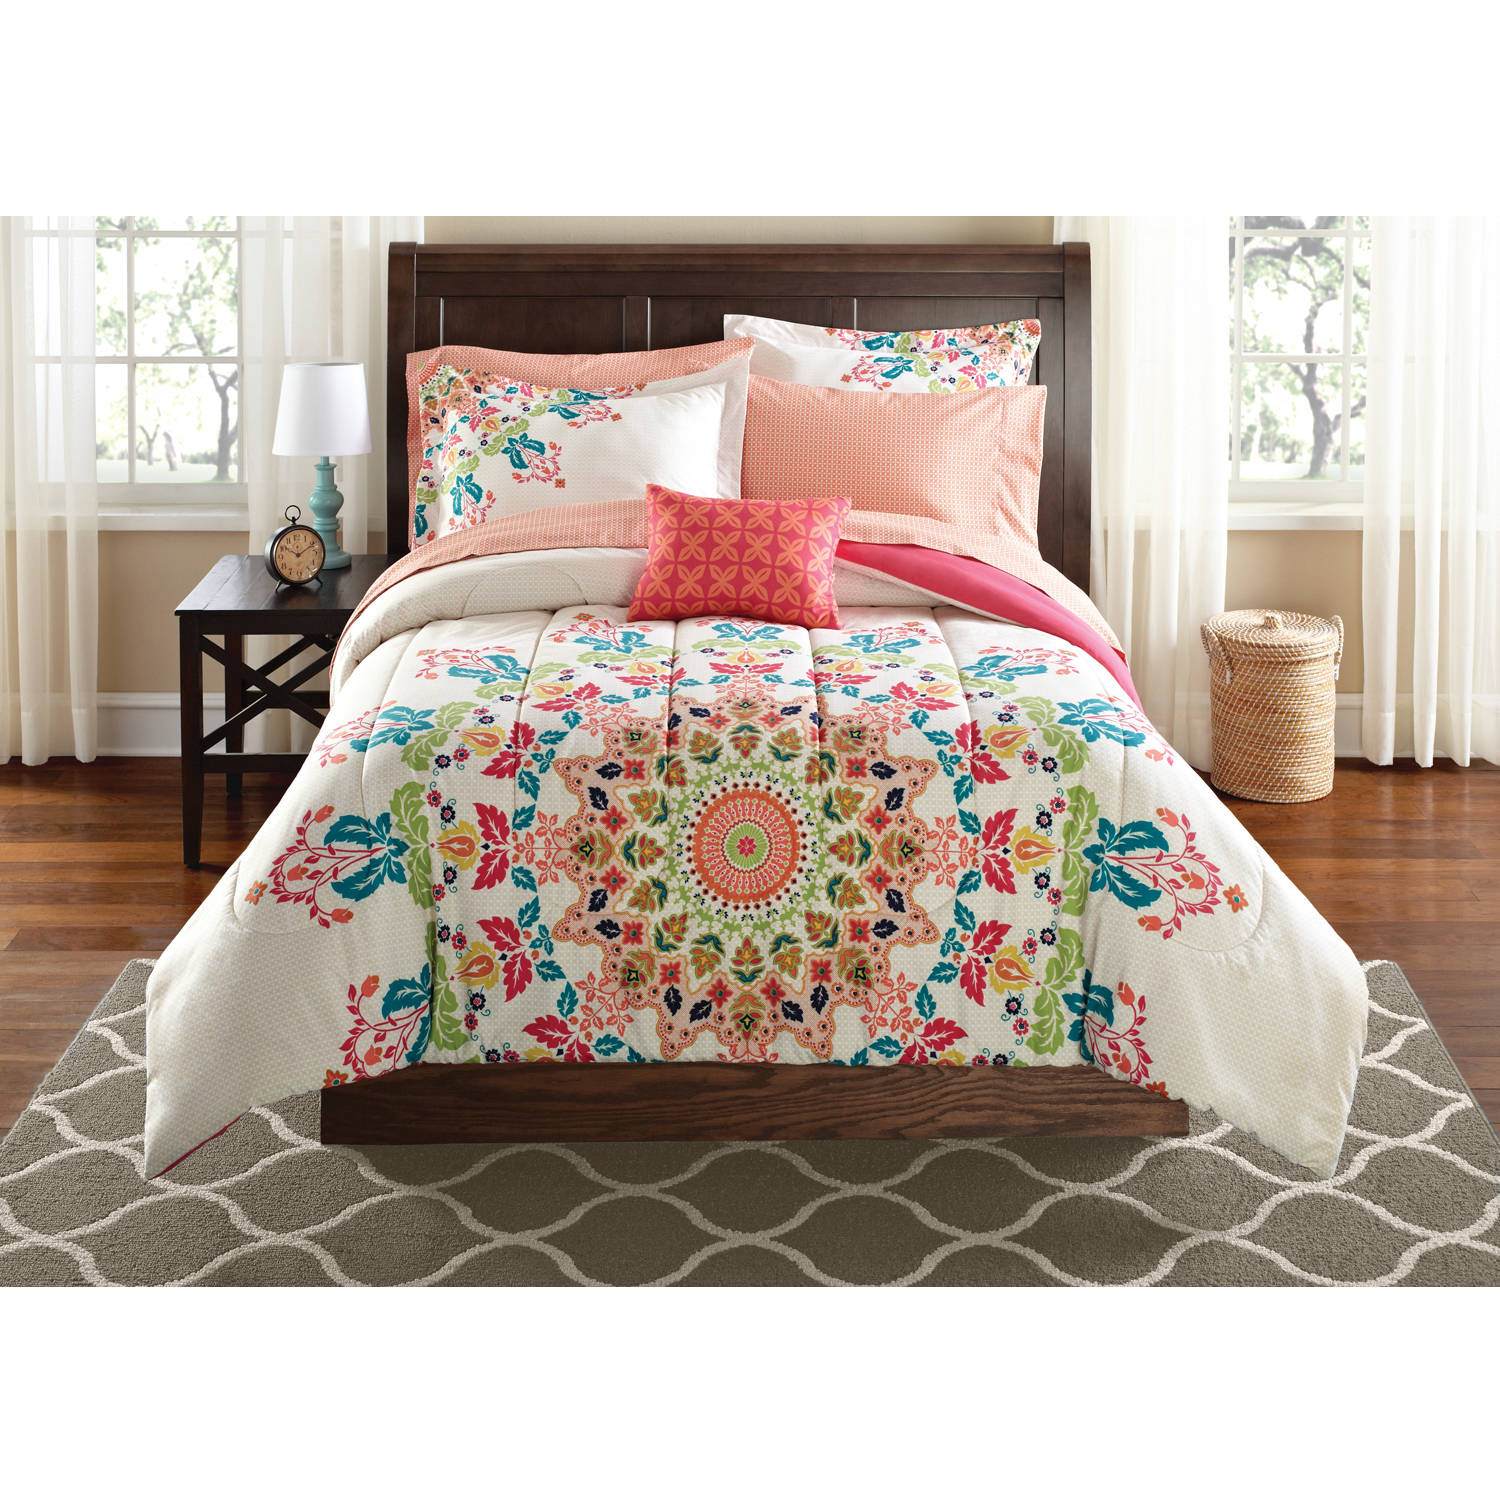 bedding sets  walmartcom - mainstays medallion bedinabag bedding set